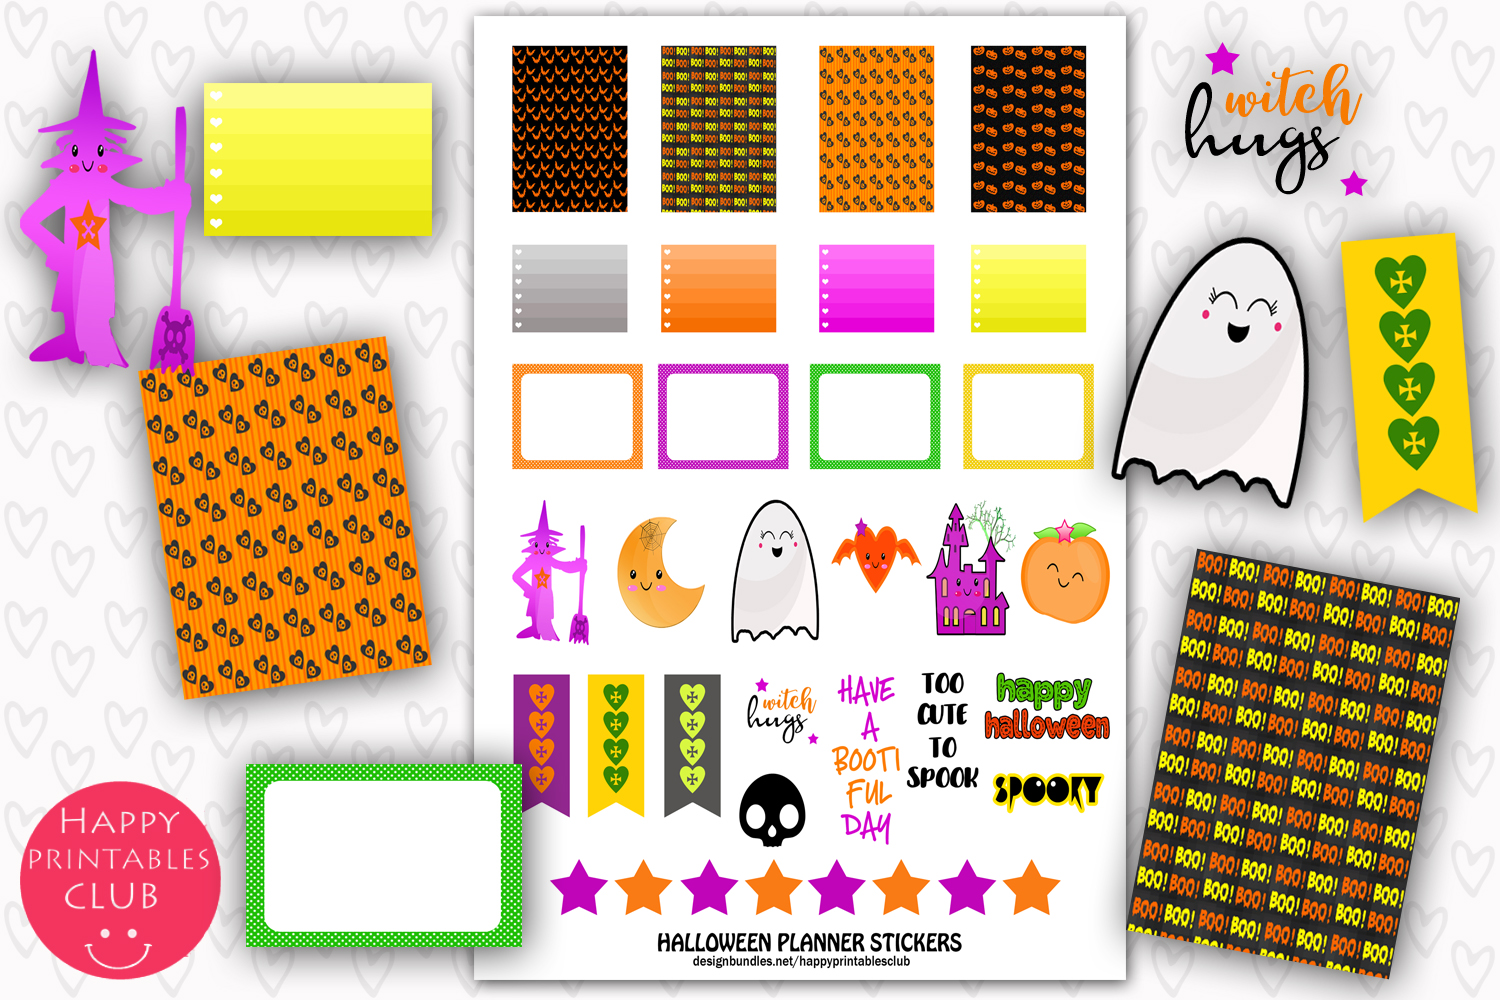 Download Free Printable Halloween Planner Stickers Graphic By Happy Printables for Cricut Explore, Silhouette and other cutting machines.